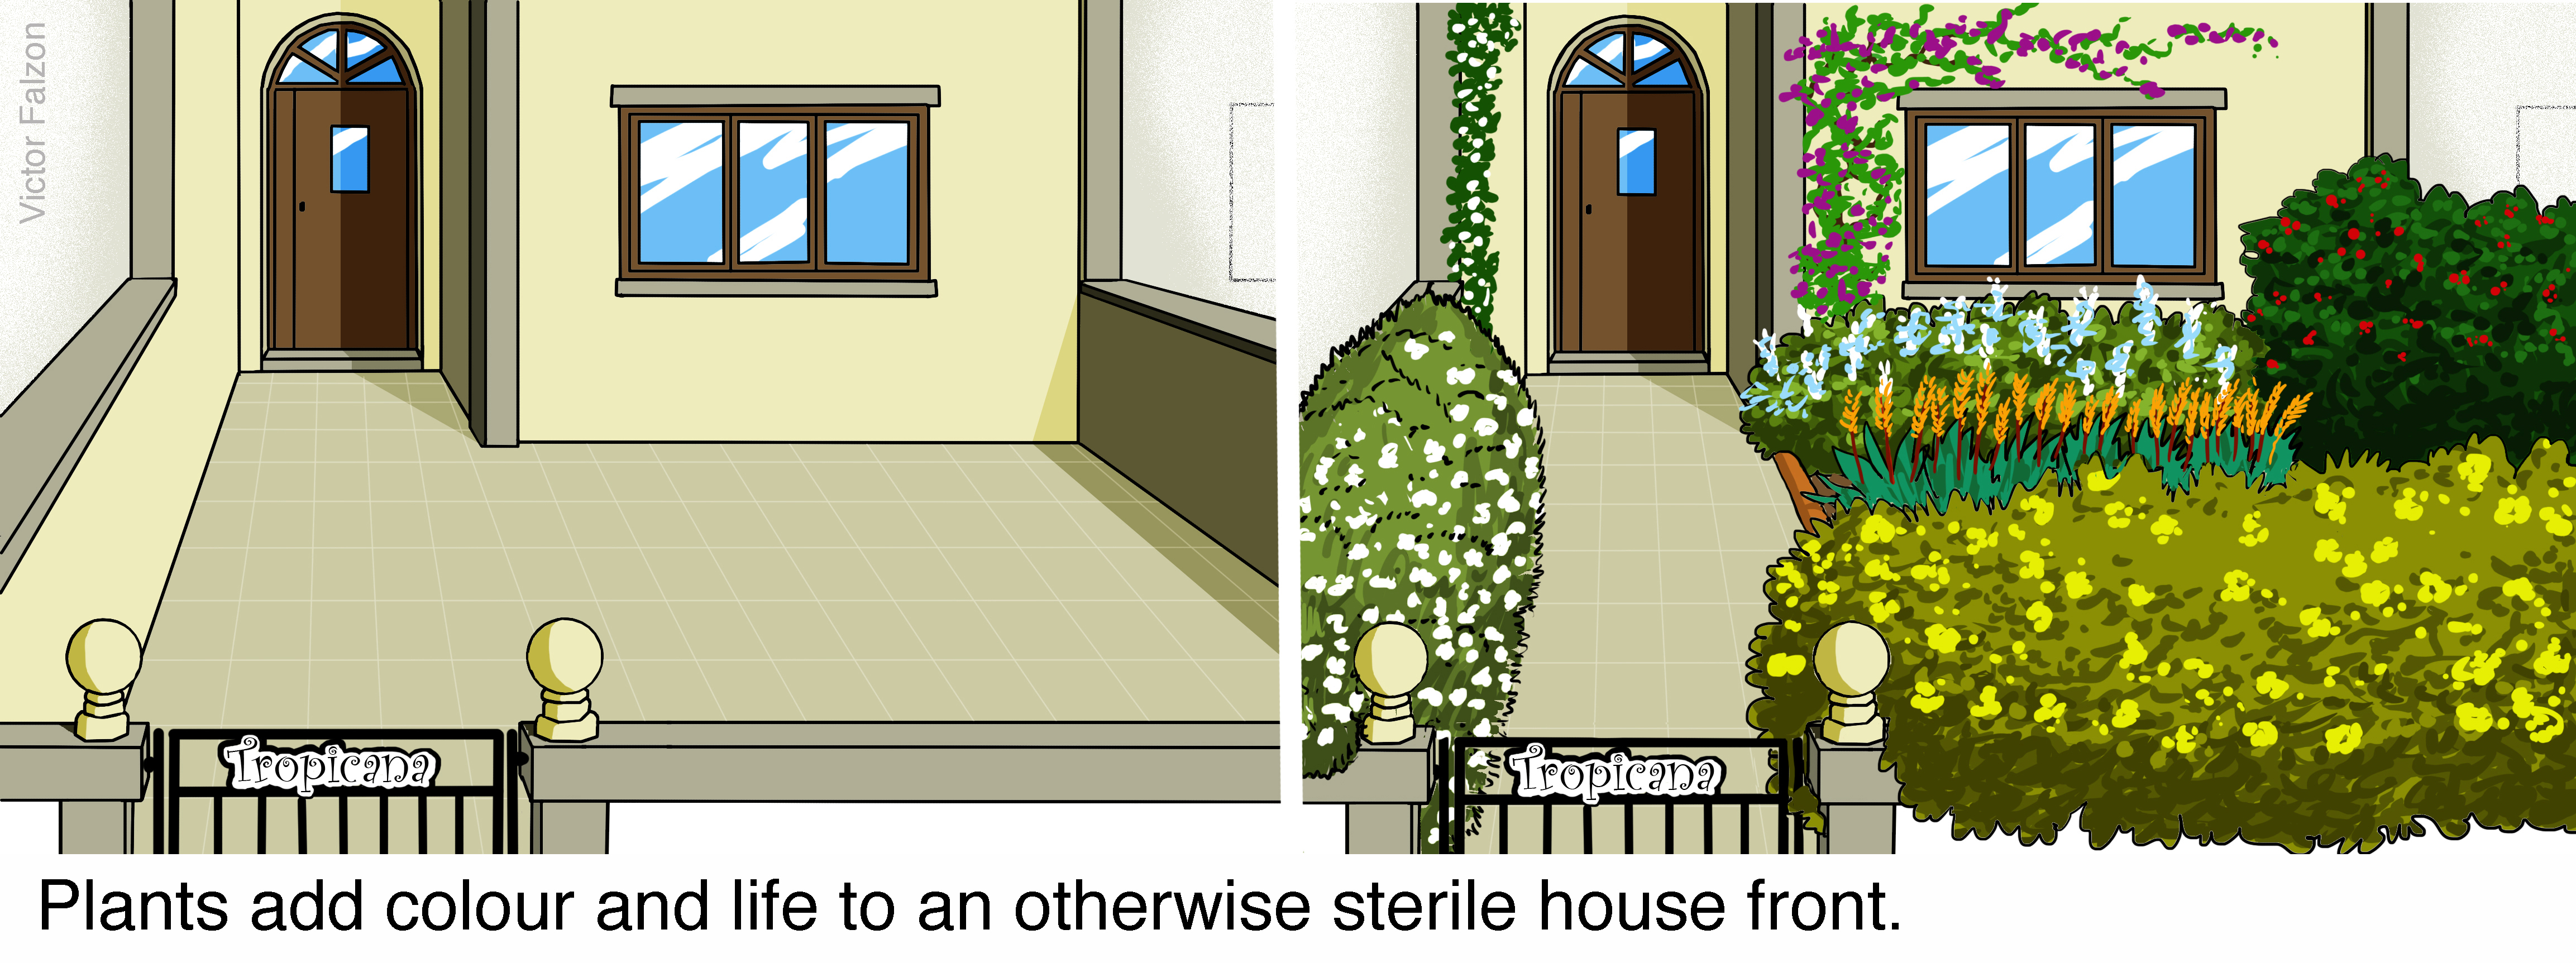 Plants add colour and life to an otherwise sterile house front.